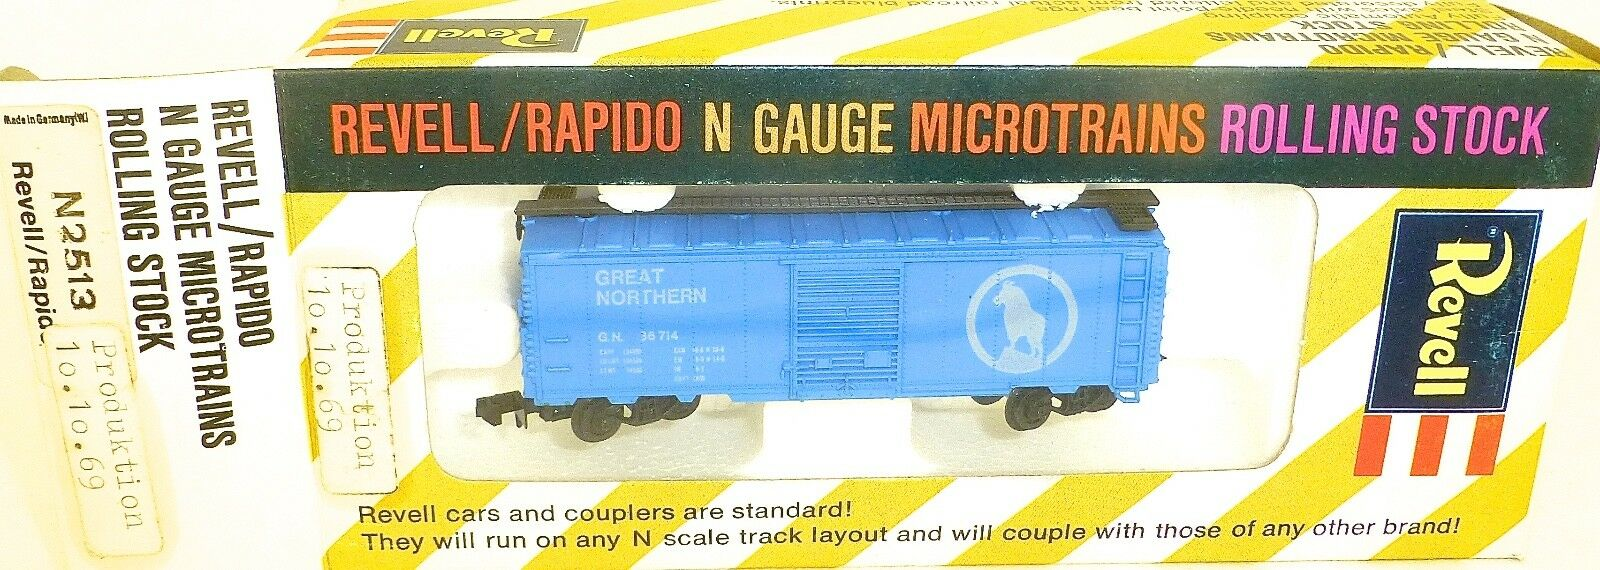 Great Northern 10.10.69 Revell Rapido MicroTrains N-2513 OVP Ht5 Å